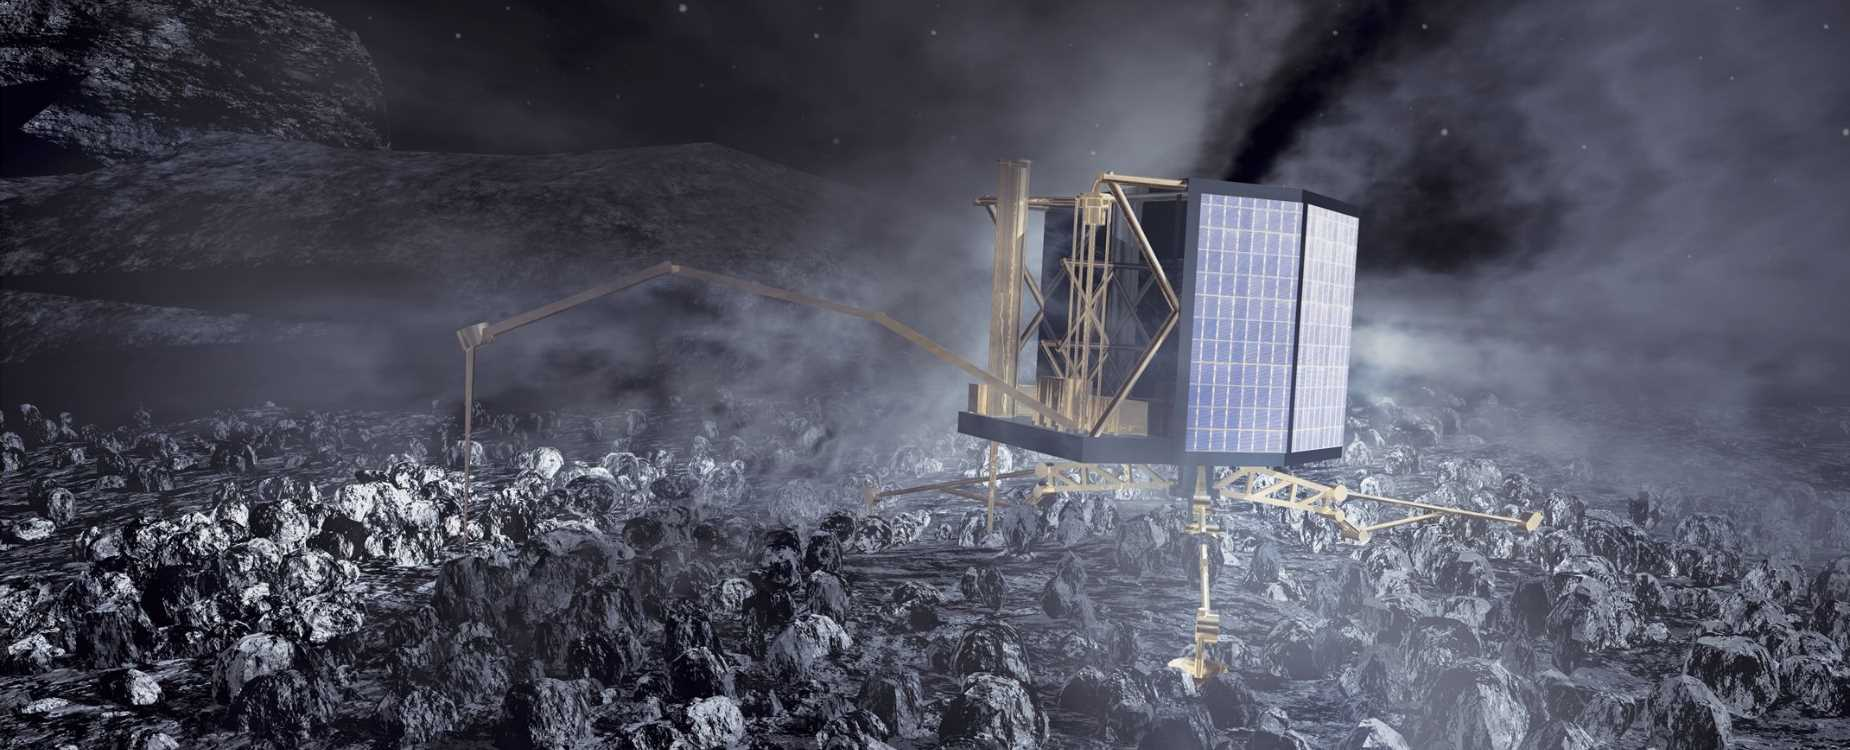 The Philae lander at work on Comet 67P/Churyumov-Gerasimenko. Image: ESA / AOES Medialab